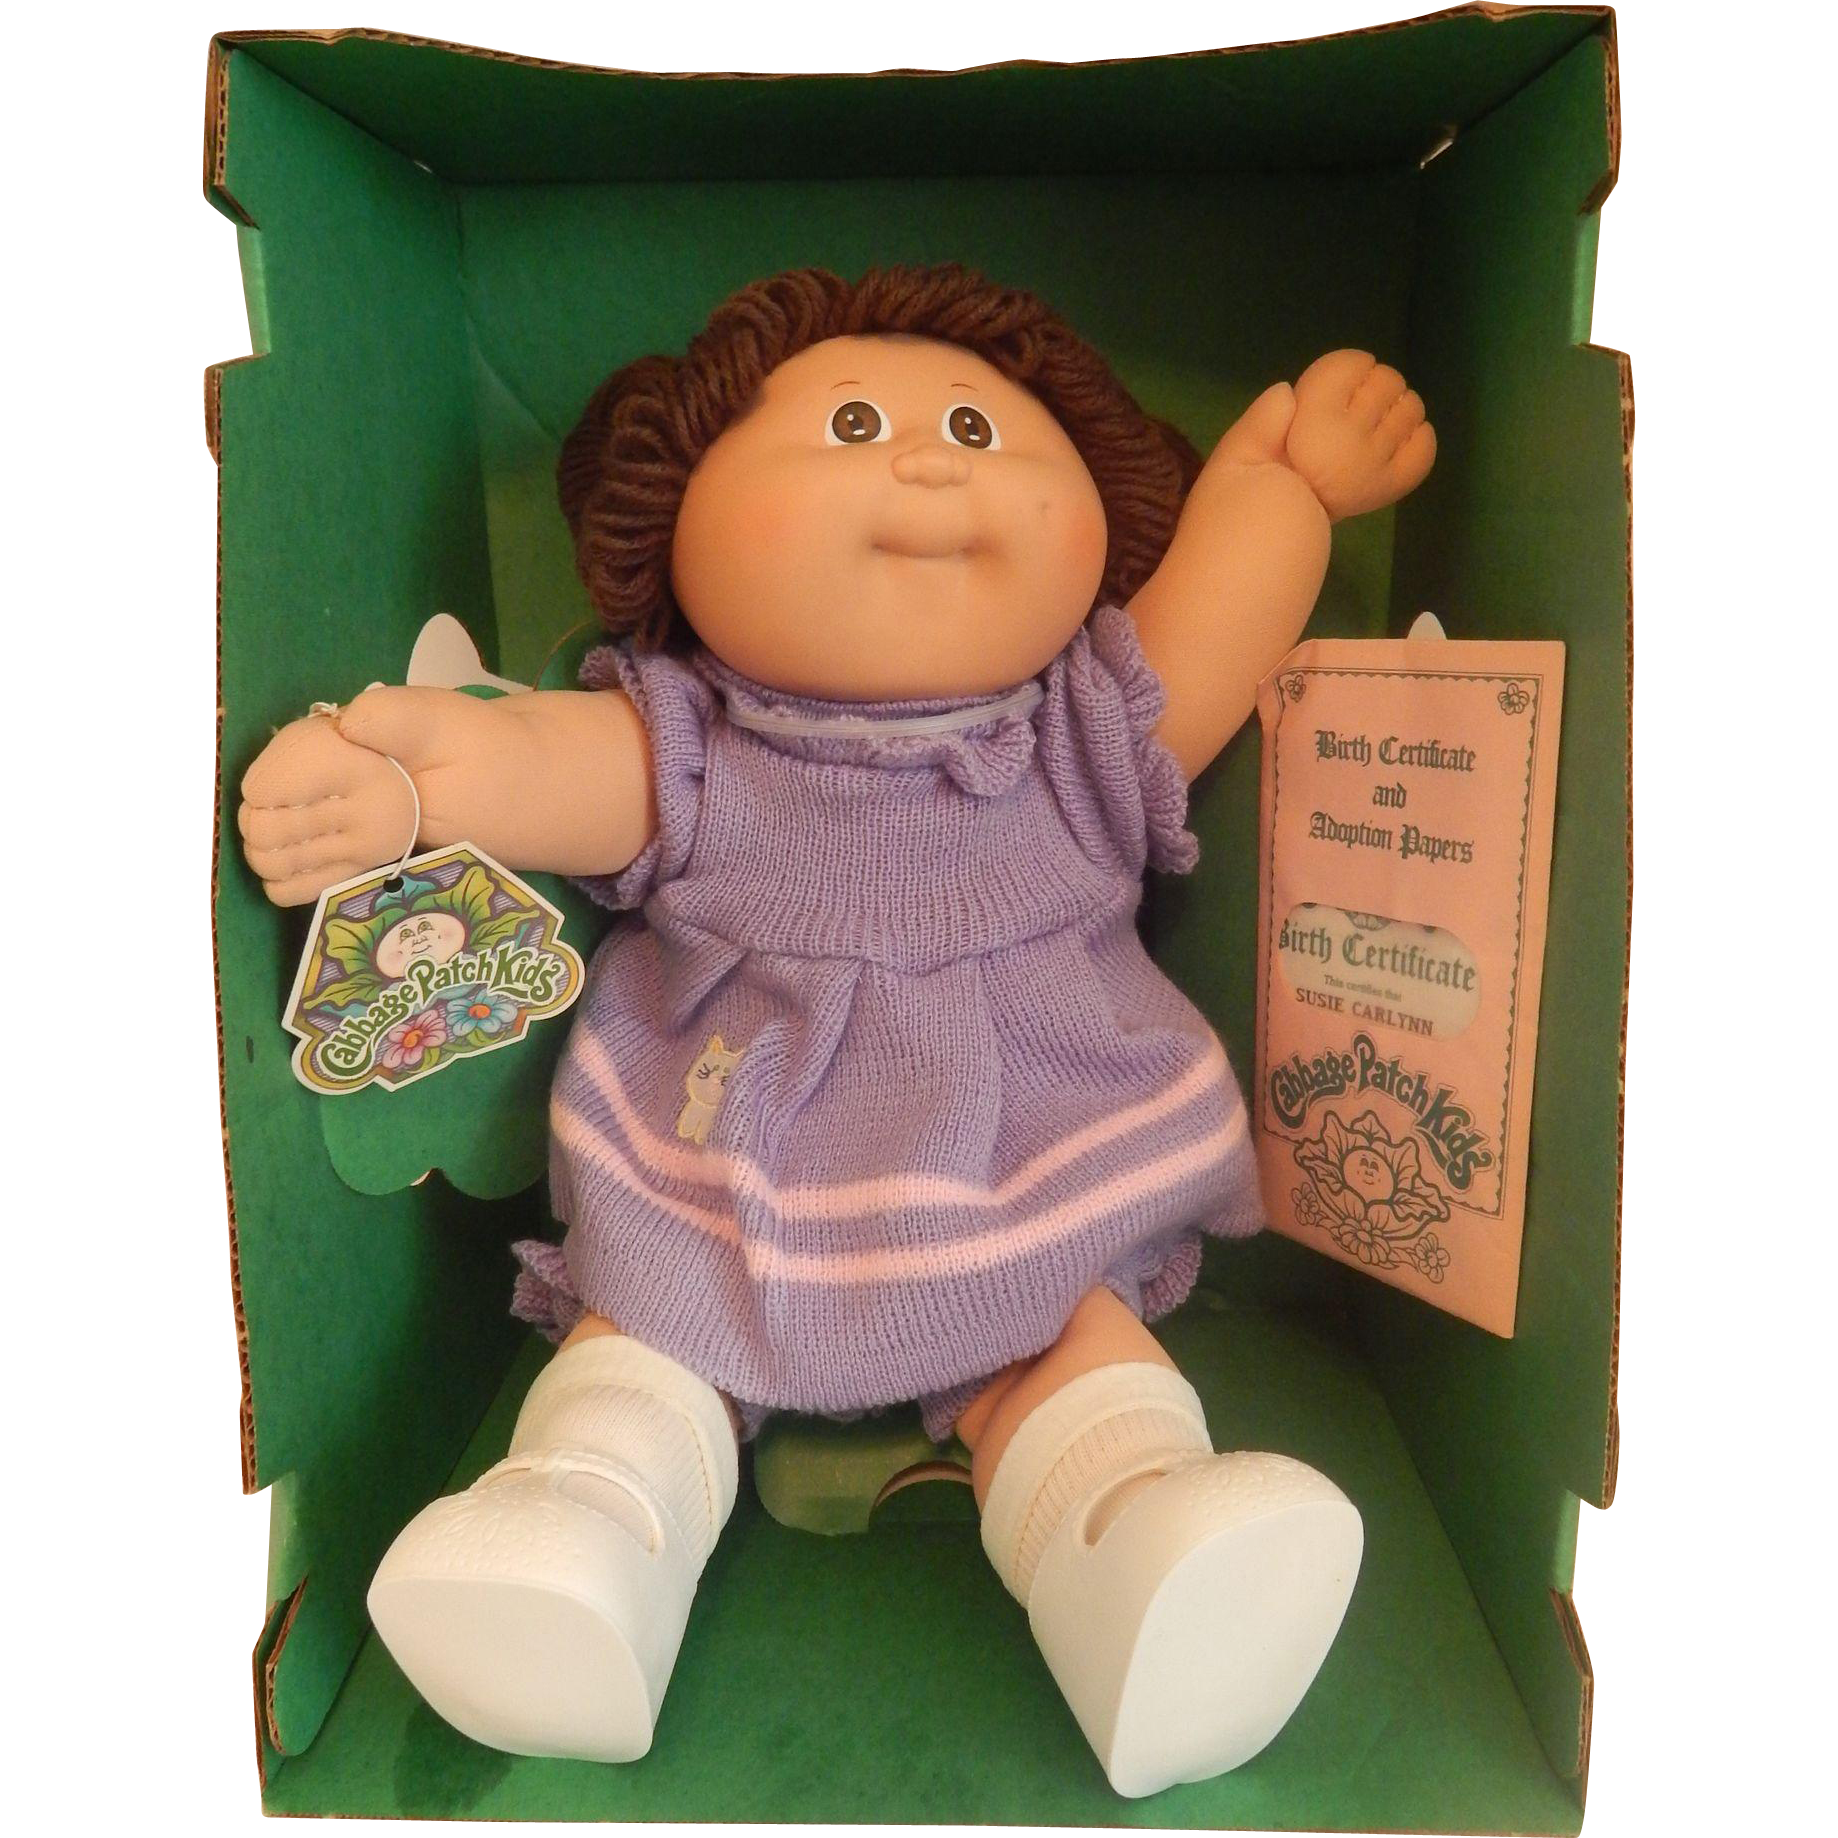 Cabbage patch kids doll 1984 from colemanscollectibles on ruby lane cabbage patch kids doll 1984 aiddatafo Images